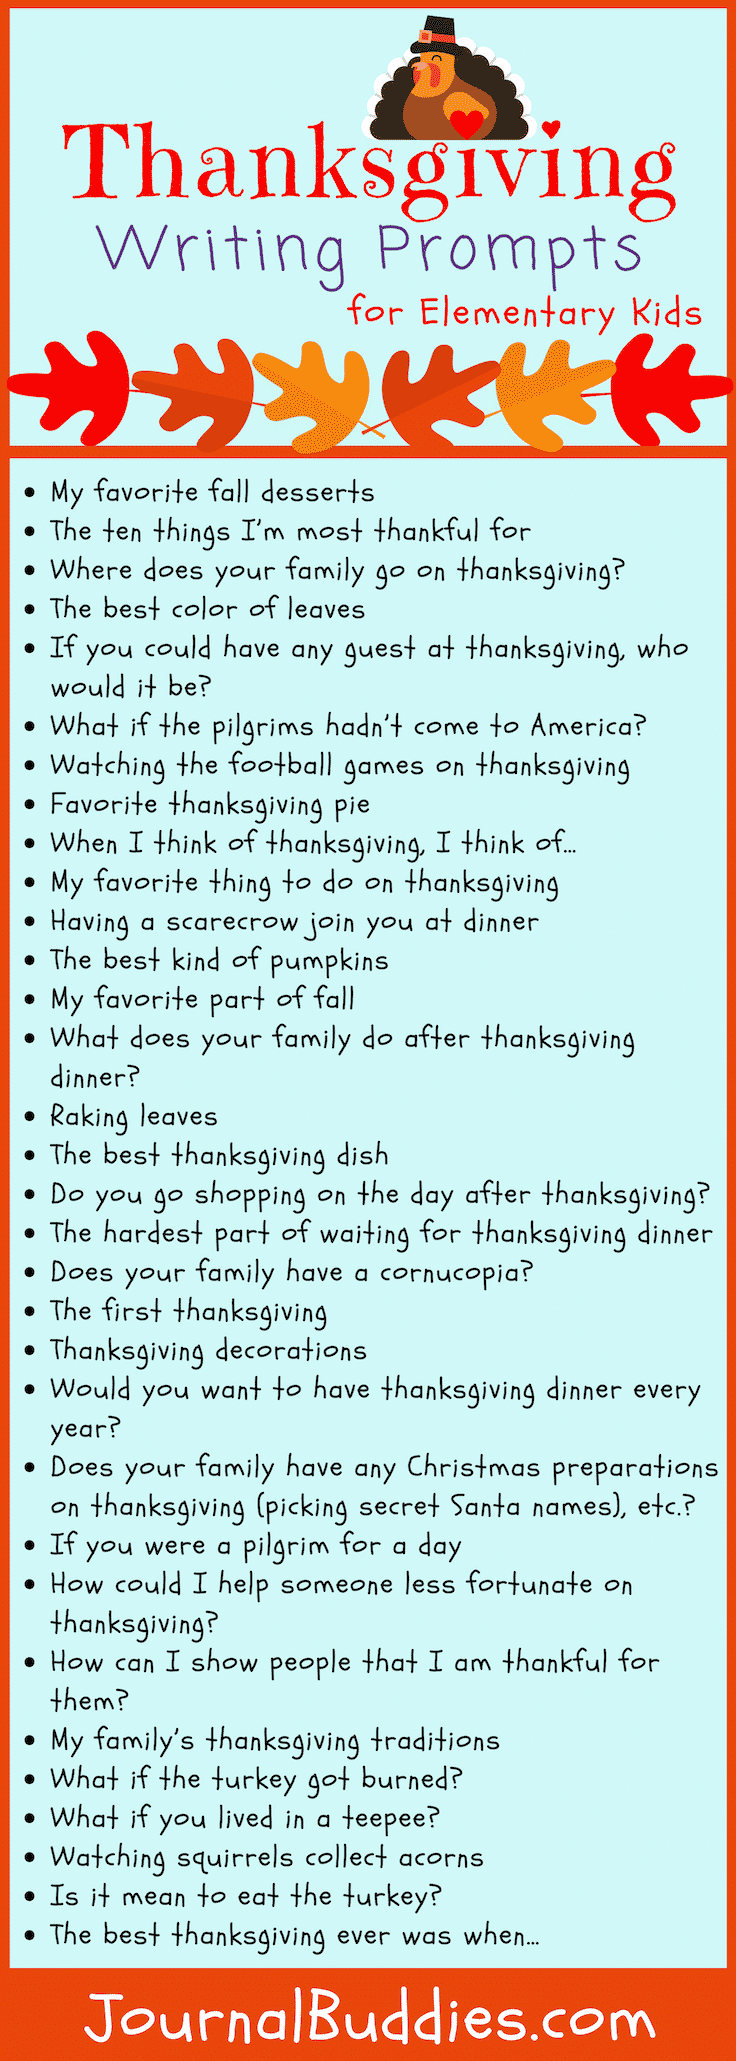 Thanksgiving Writing Prompts and Journal Ideas for Elementary Kids